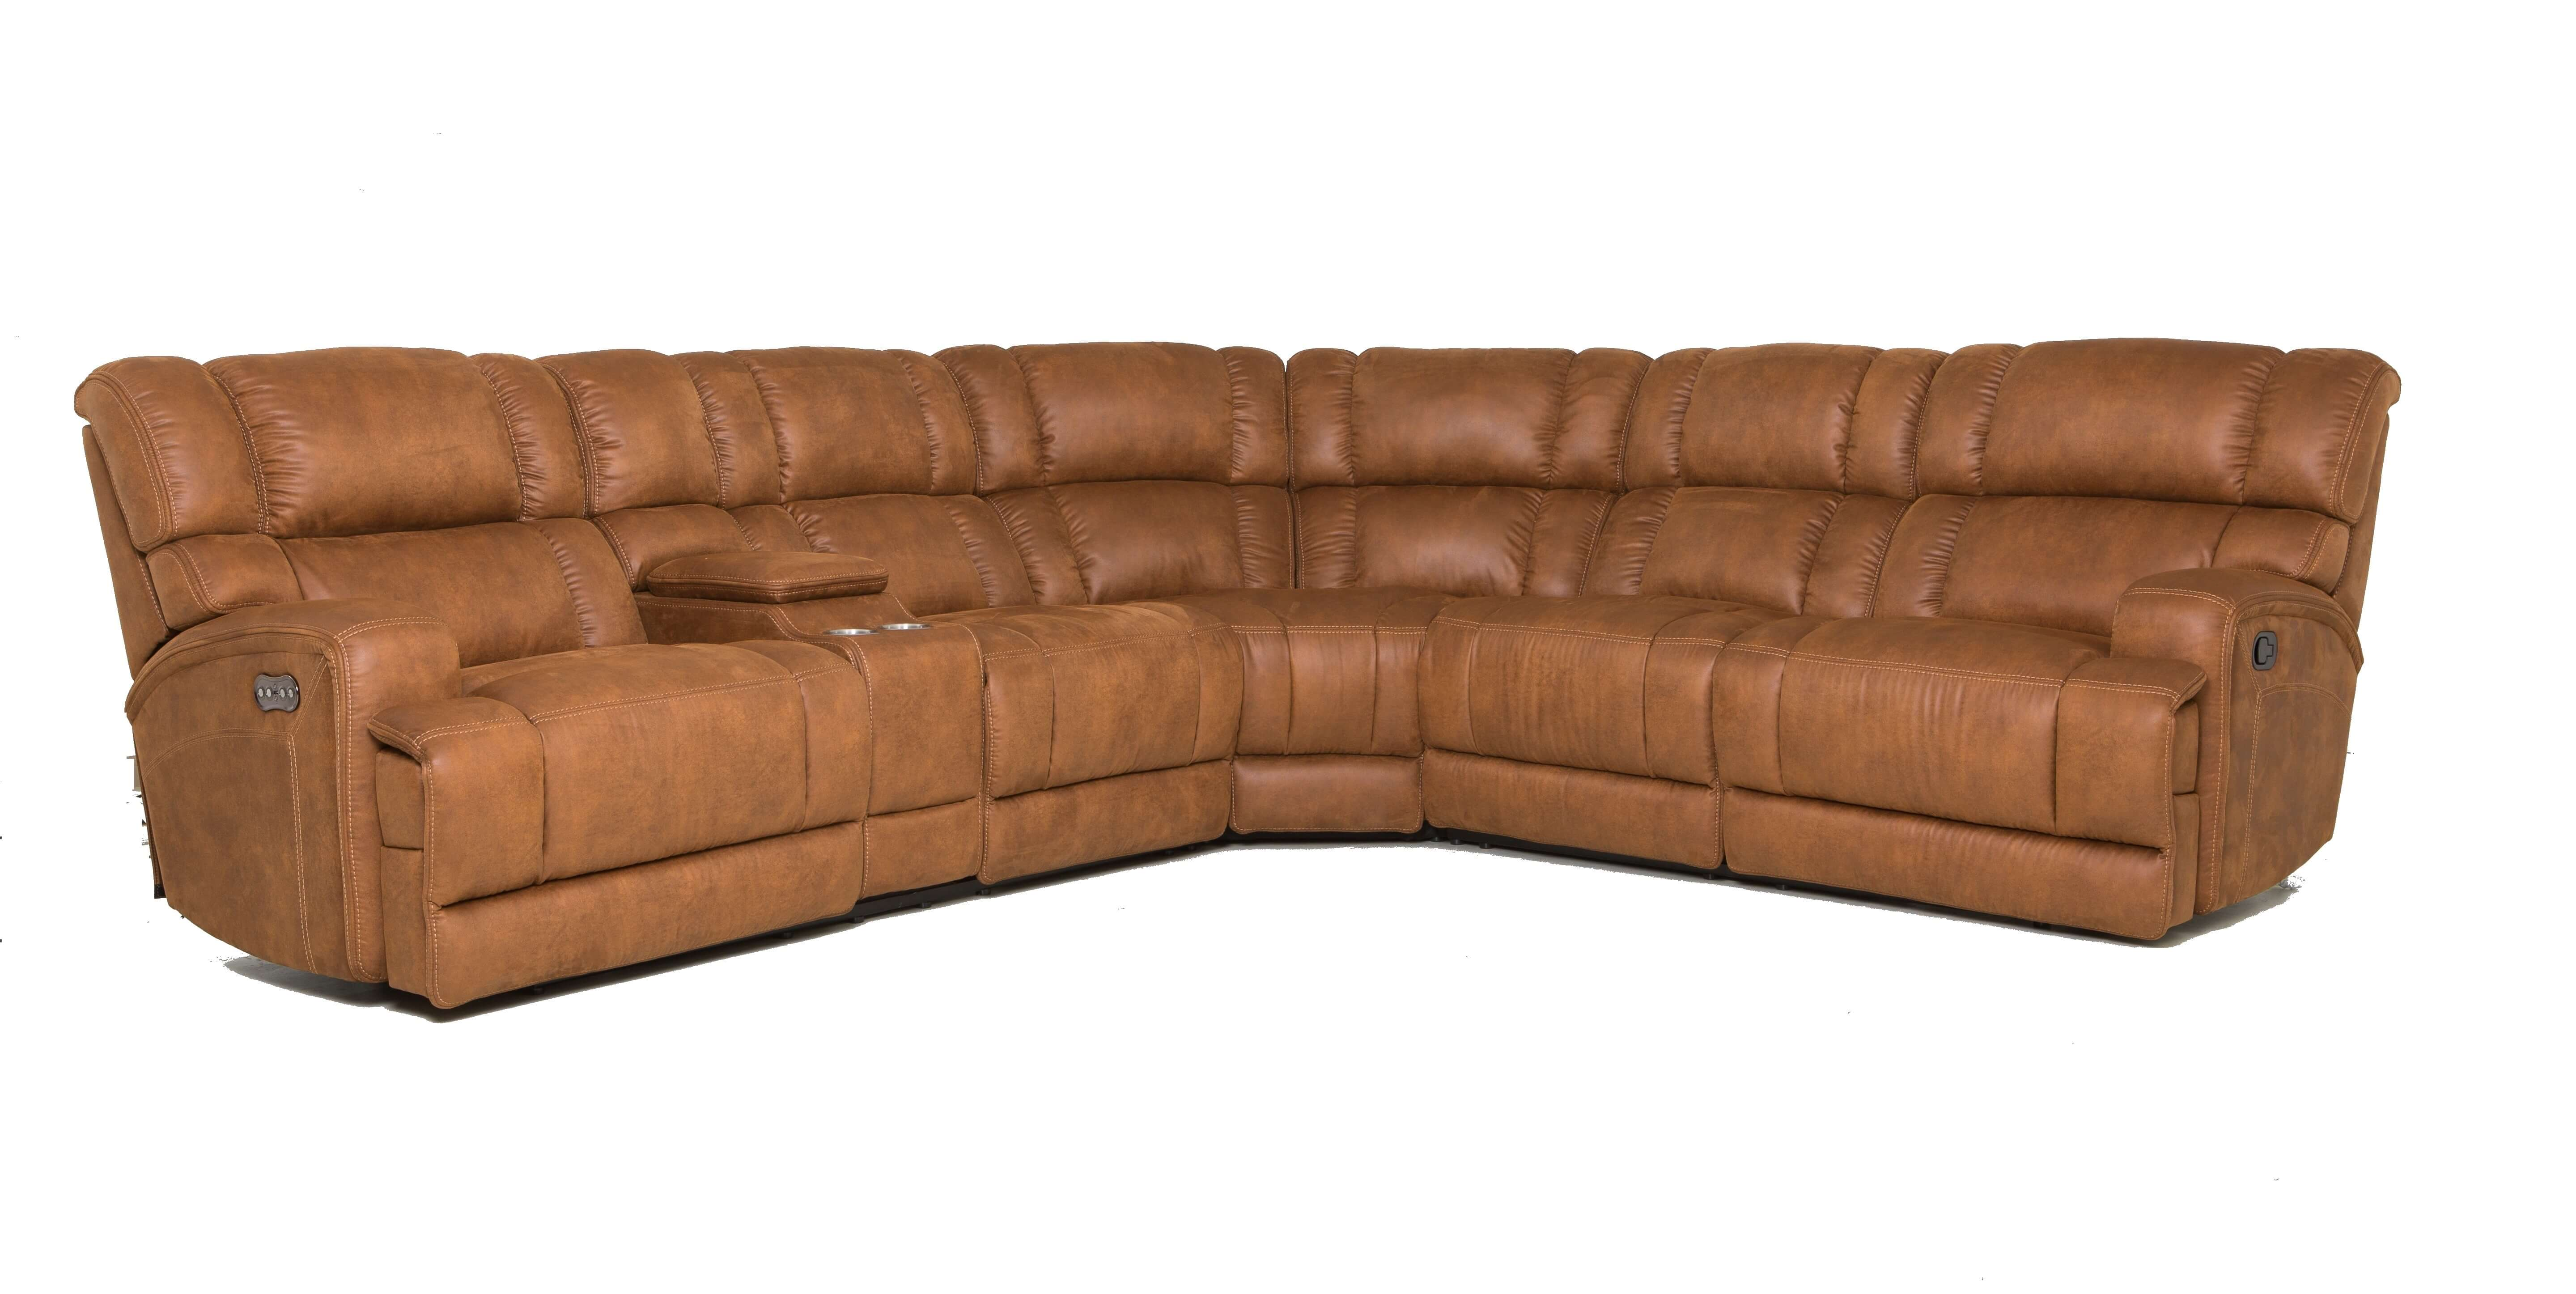 Brady Brown Power Sectional with Adjustable Headrest